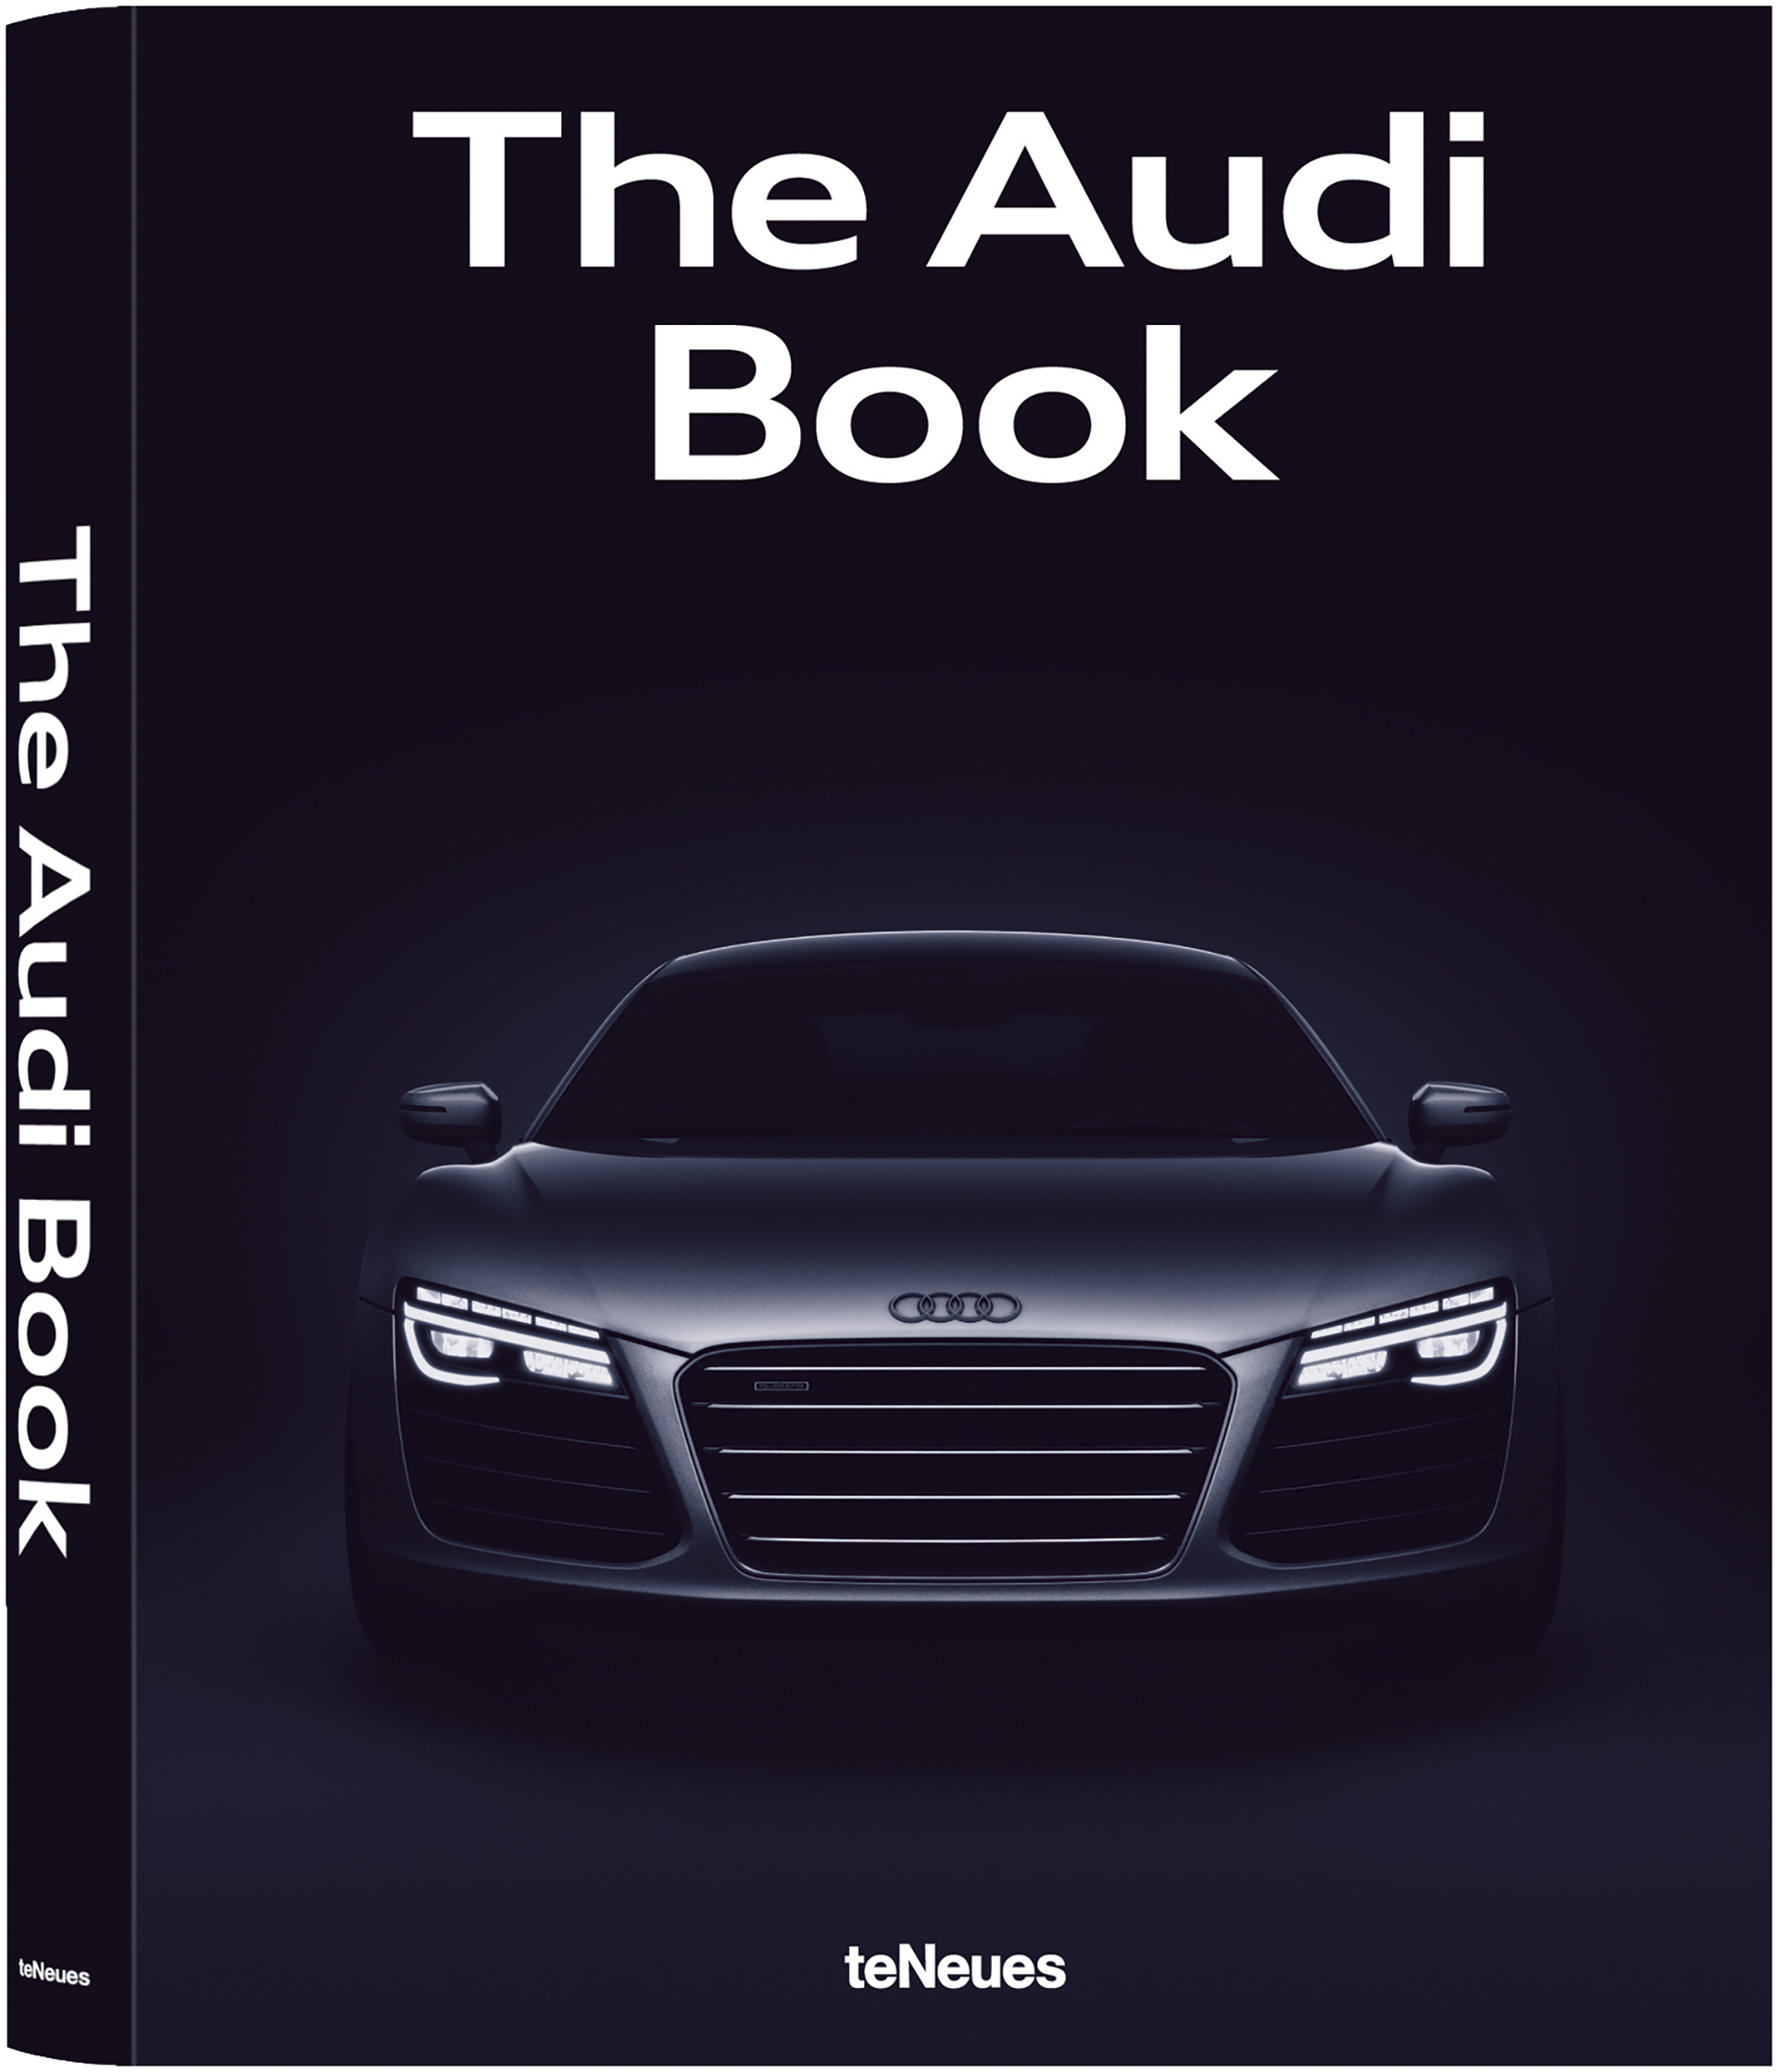 The Audi Book - Corporate Publishing teNeues